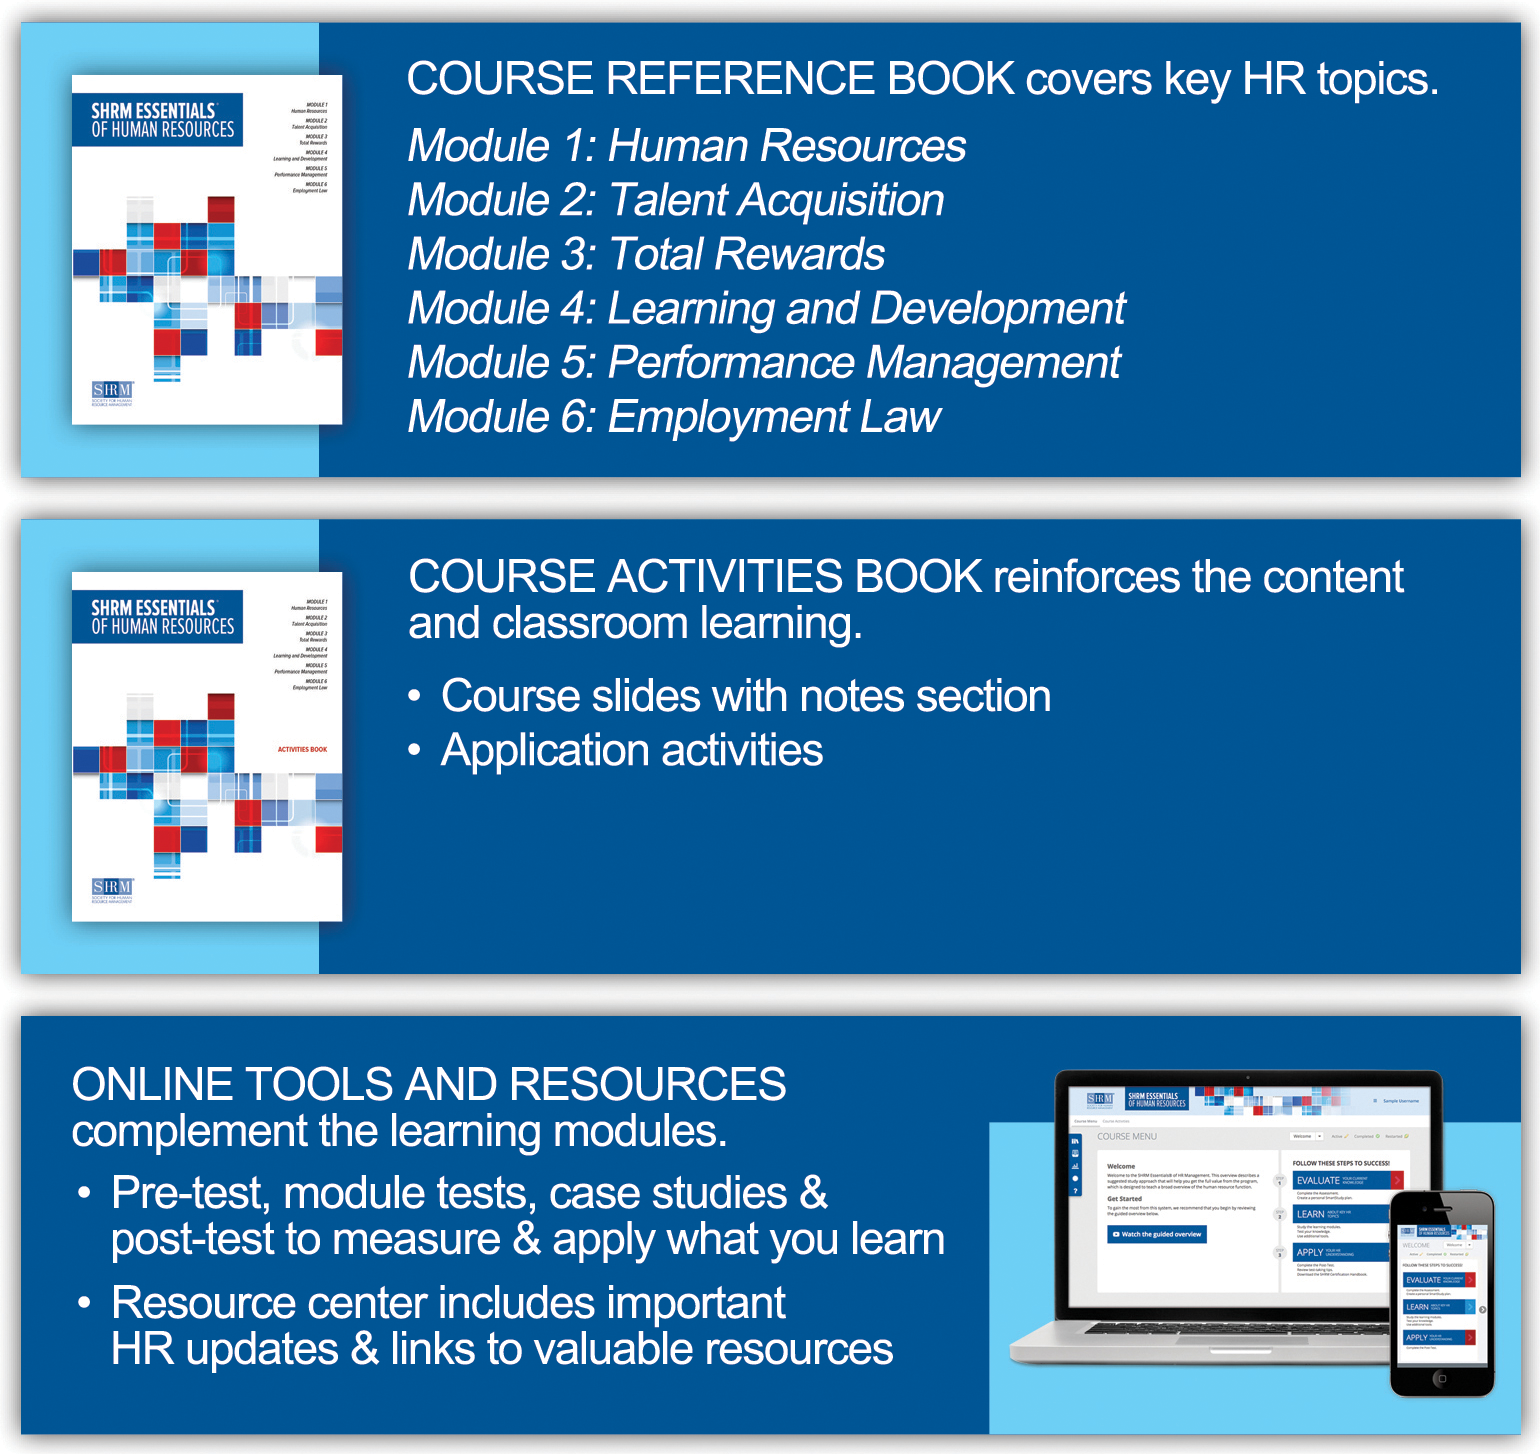 course reference book with modules 1-6 listed, course activities book, and photo of laptop and cell phone